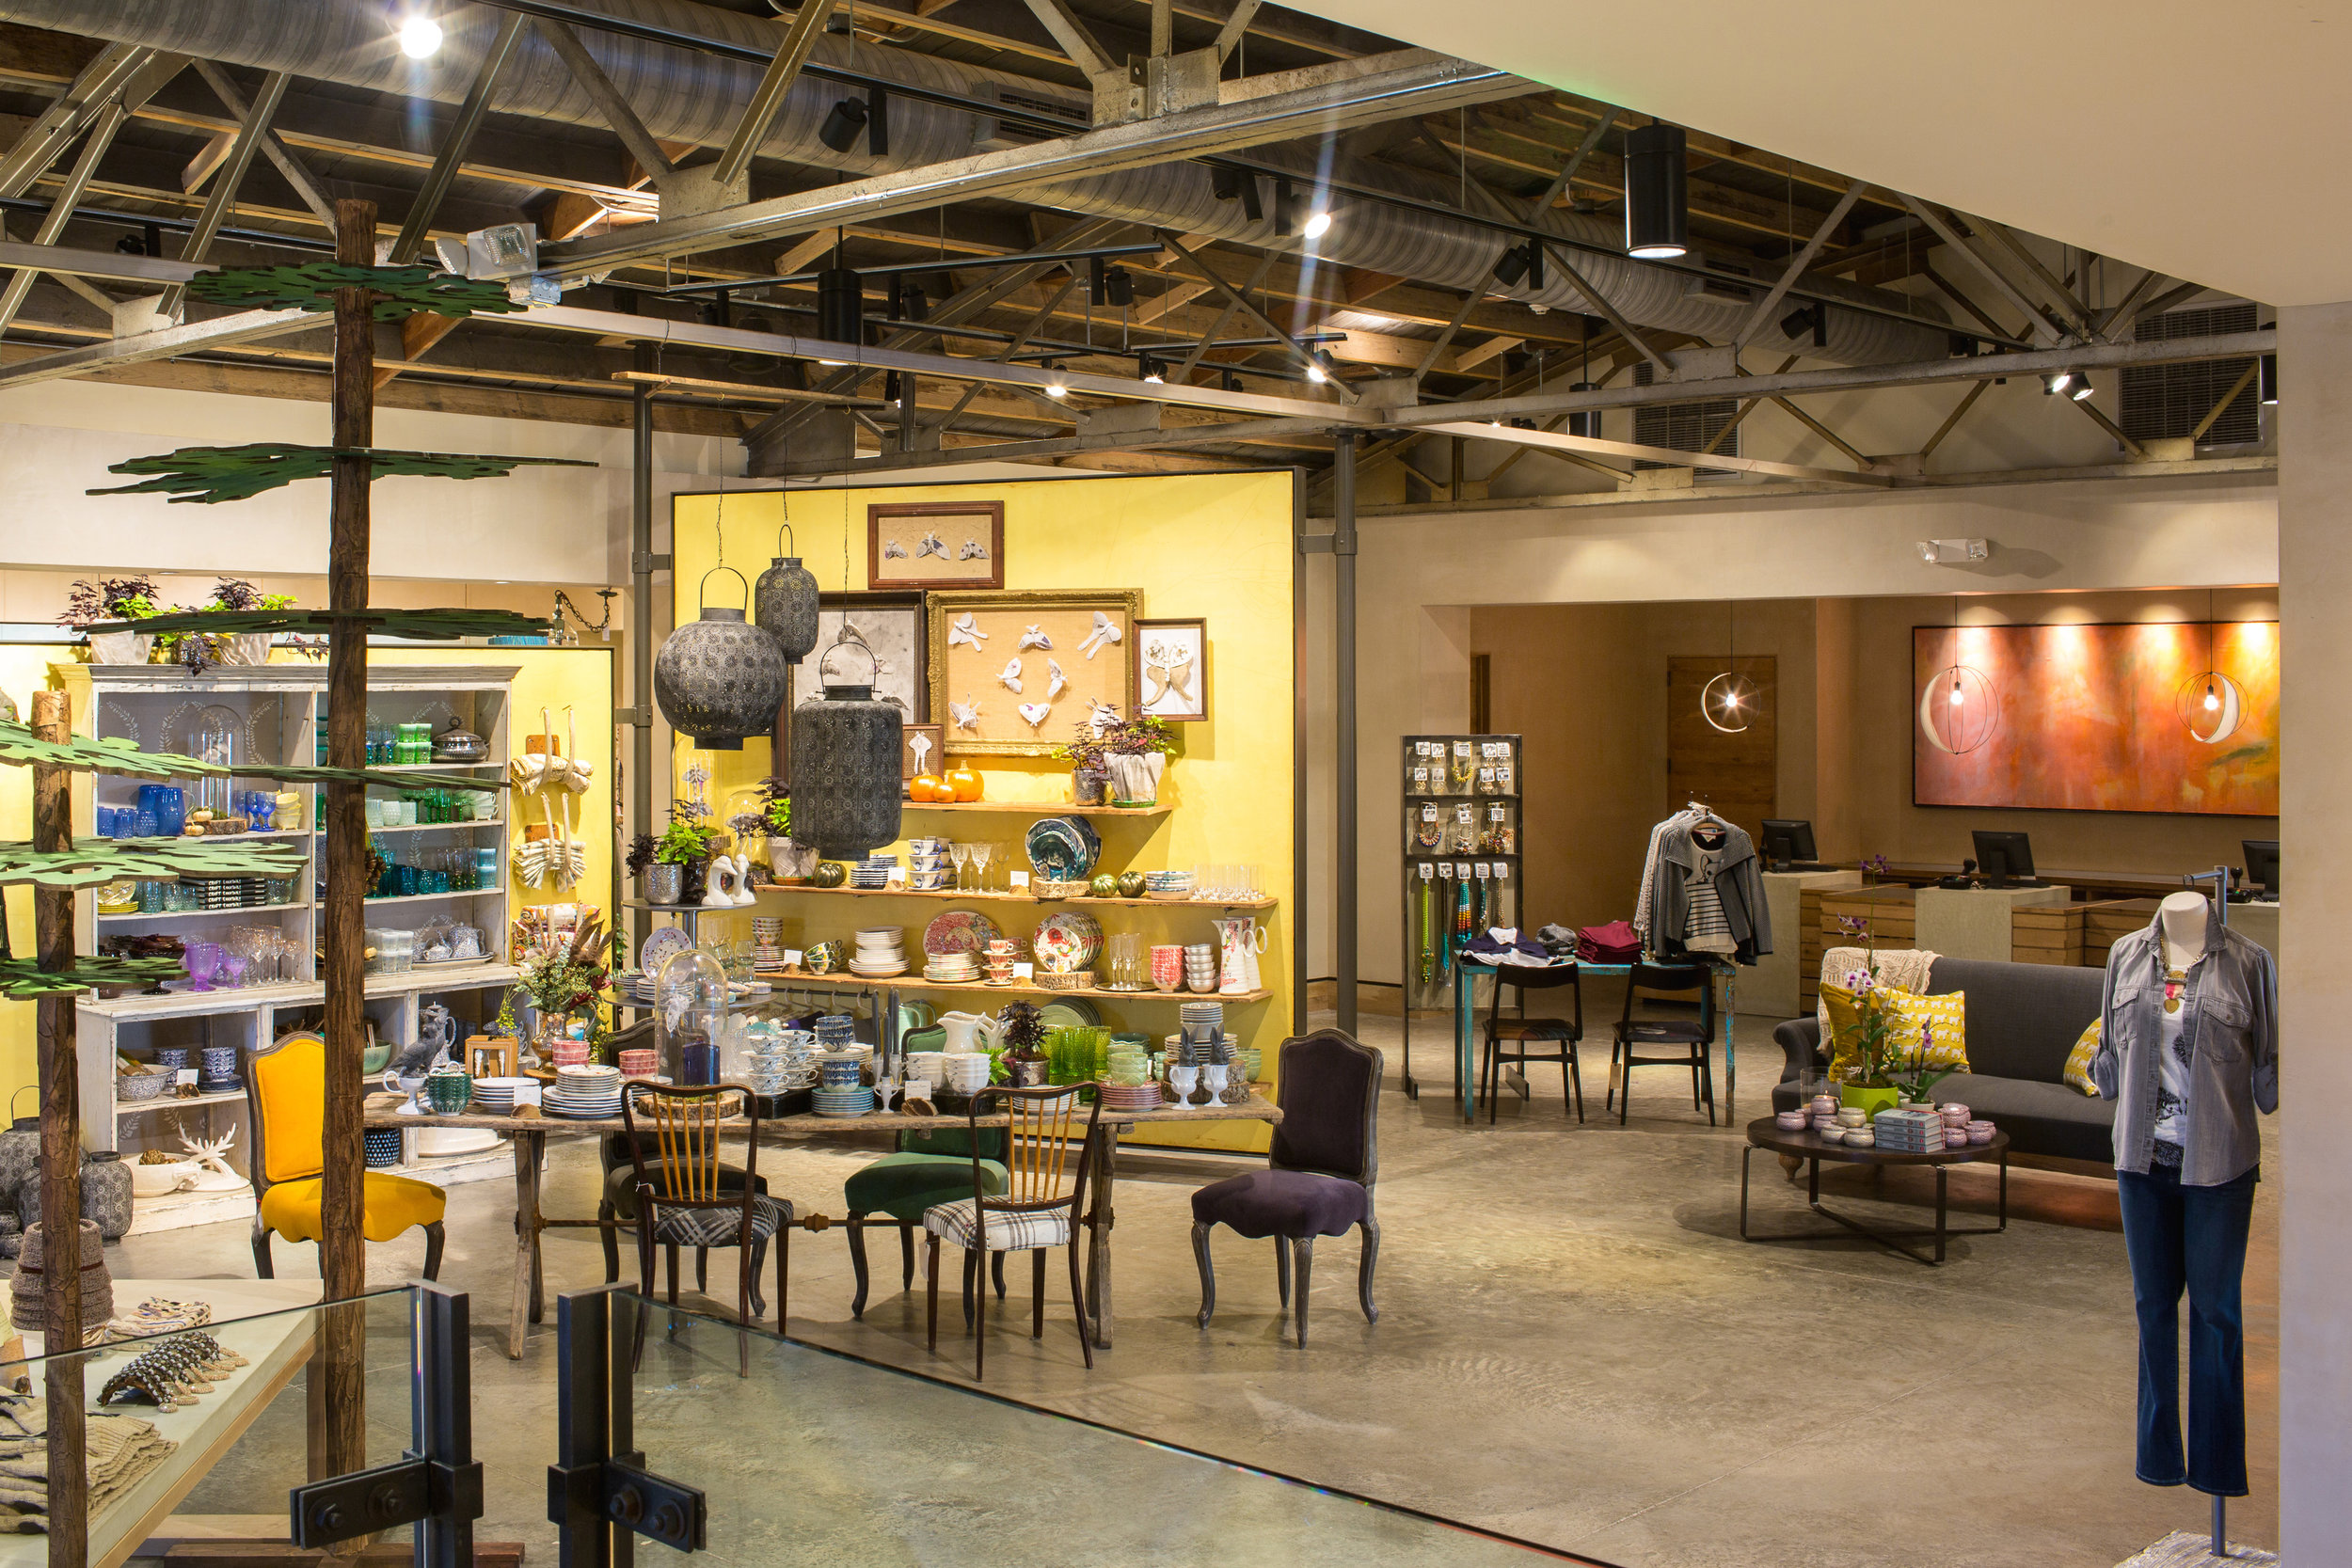 Interior retail area of Anthropologie in Knoxville, created in collaboration with NewStudio Architecture